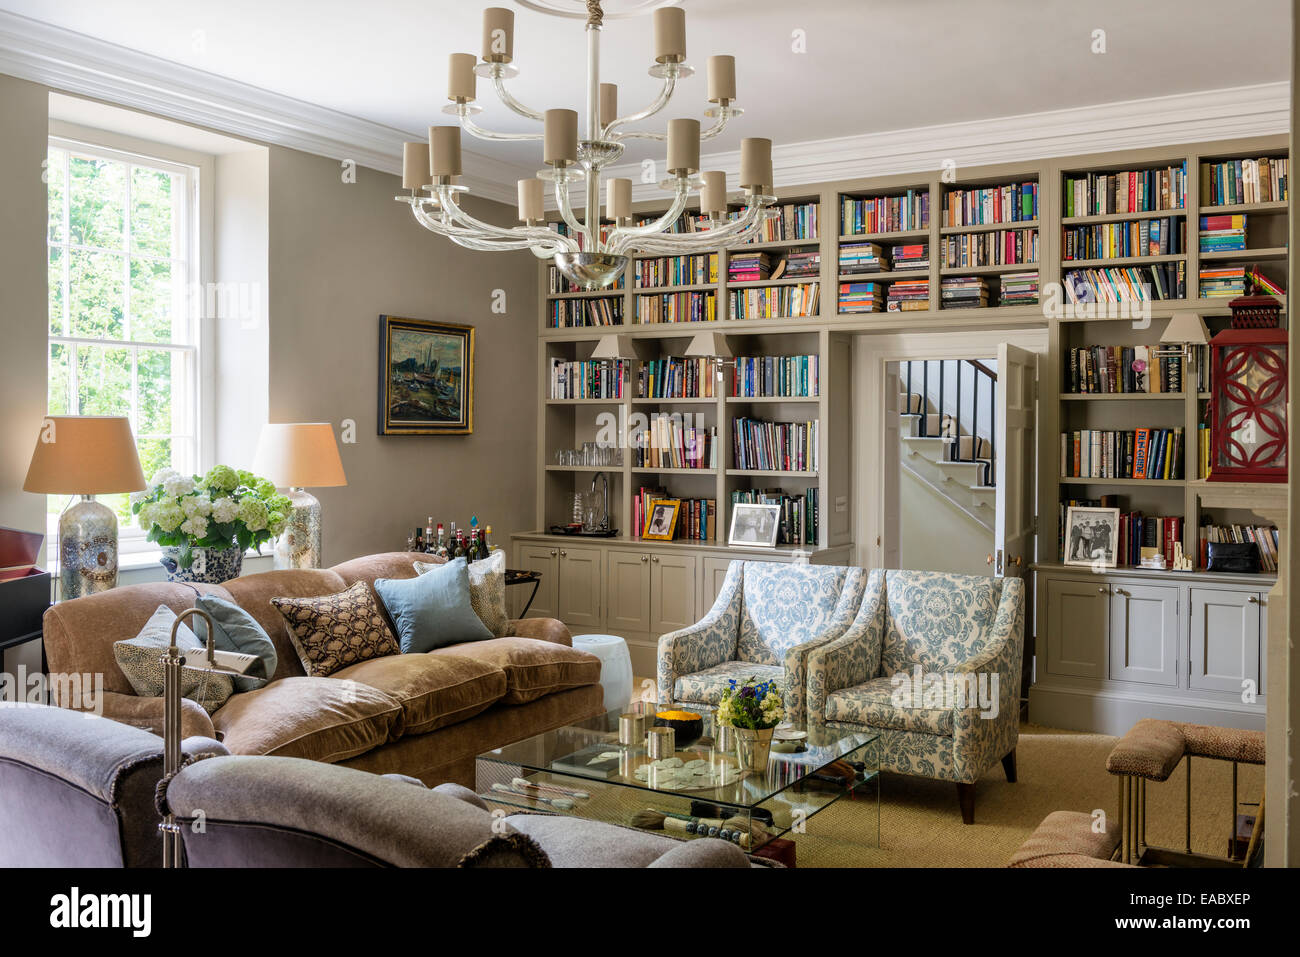 Murano chandelier and Kingscombe sofas and chairs in living room with inbuilt book shelves - Stock Image